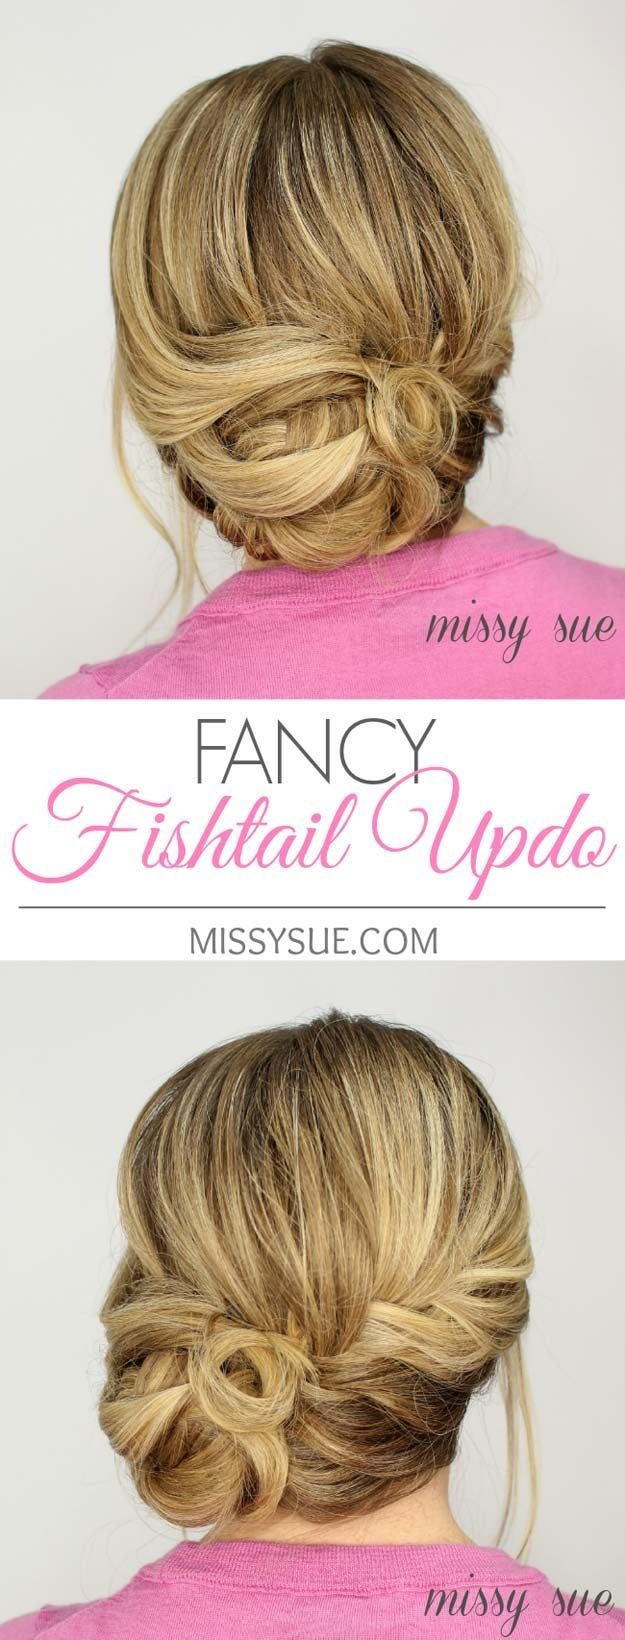 Best Hairstyles For Your 30s -Fancy Fishtail Updo- Hair Dos And Don'ts For You...